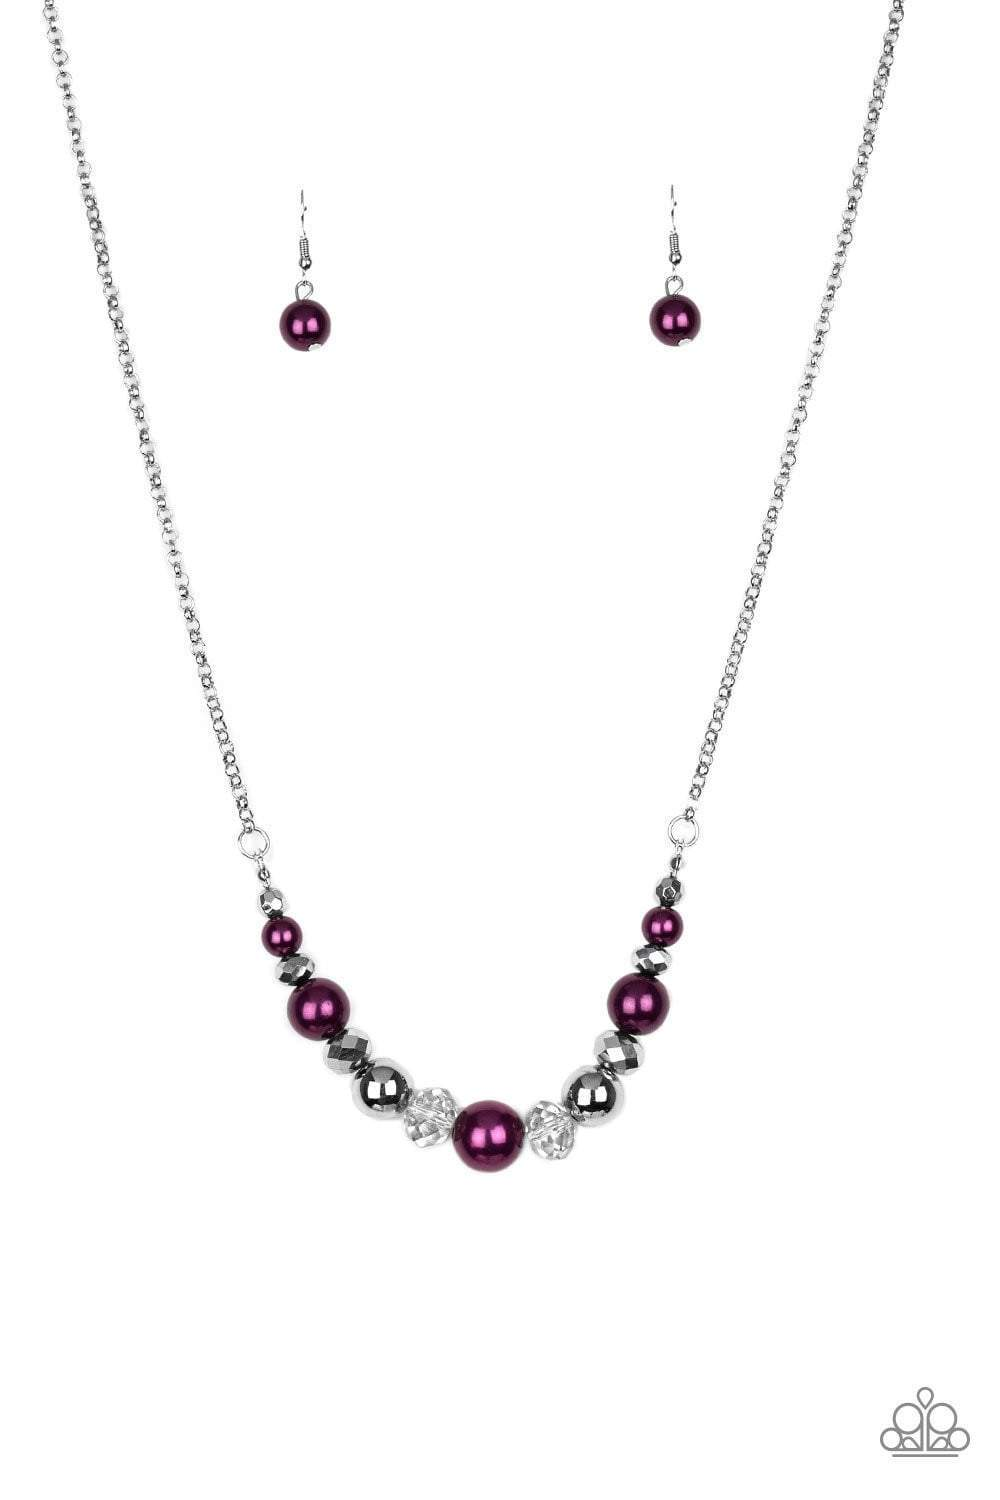 Paparazzi The Big-Leaguer - Purple Silver Hematite Bead Necklace - Bling It On Online